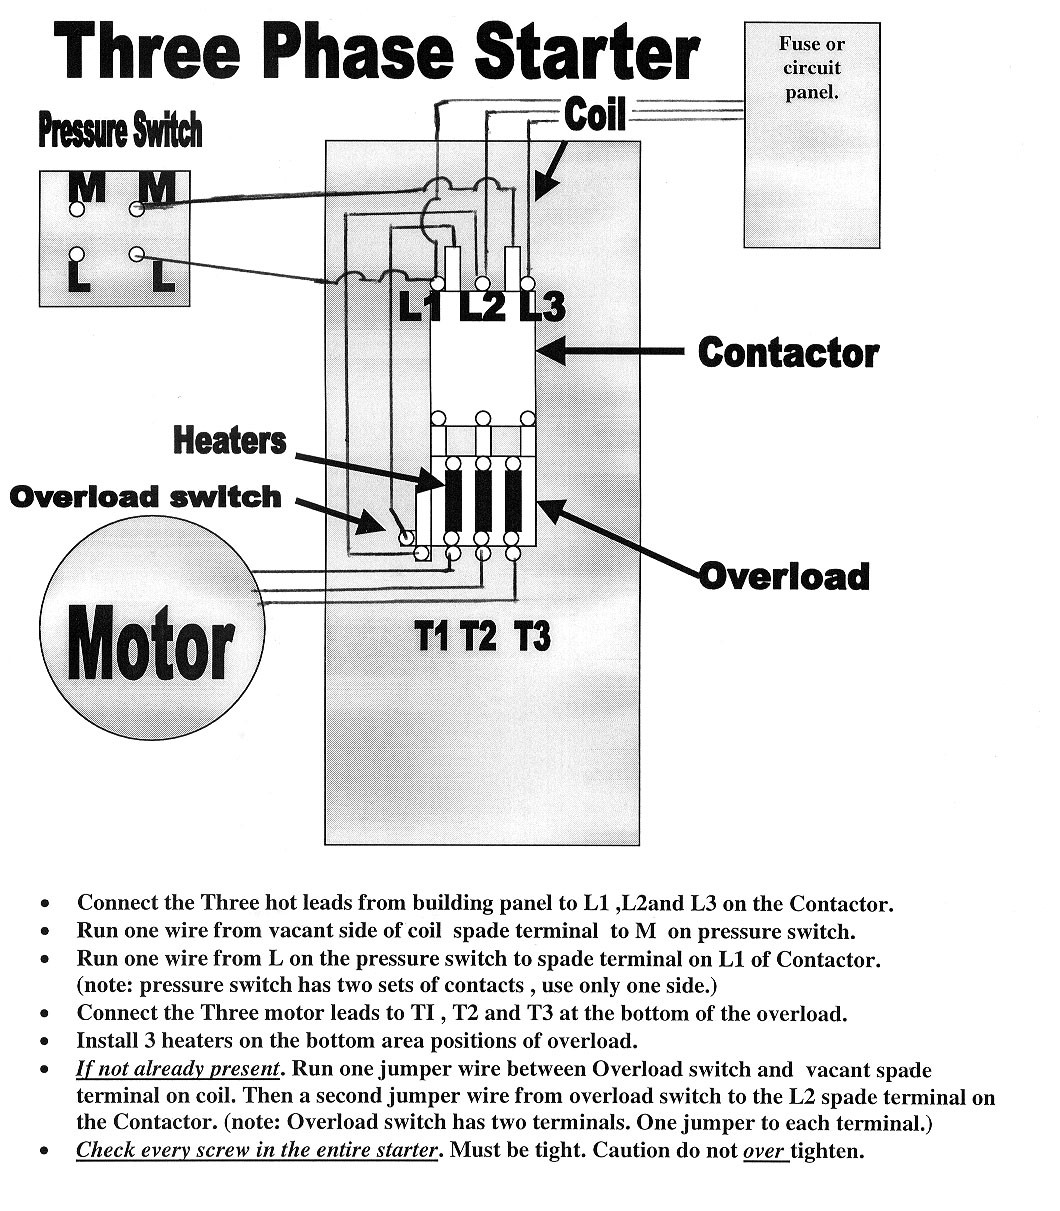 honda gx390 wiring diagram unique modern predator 420cc wiring diagram adornment electrical diagram of honda gx390 wiring diagram honda gx620 wiring diagram wiring diagram